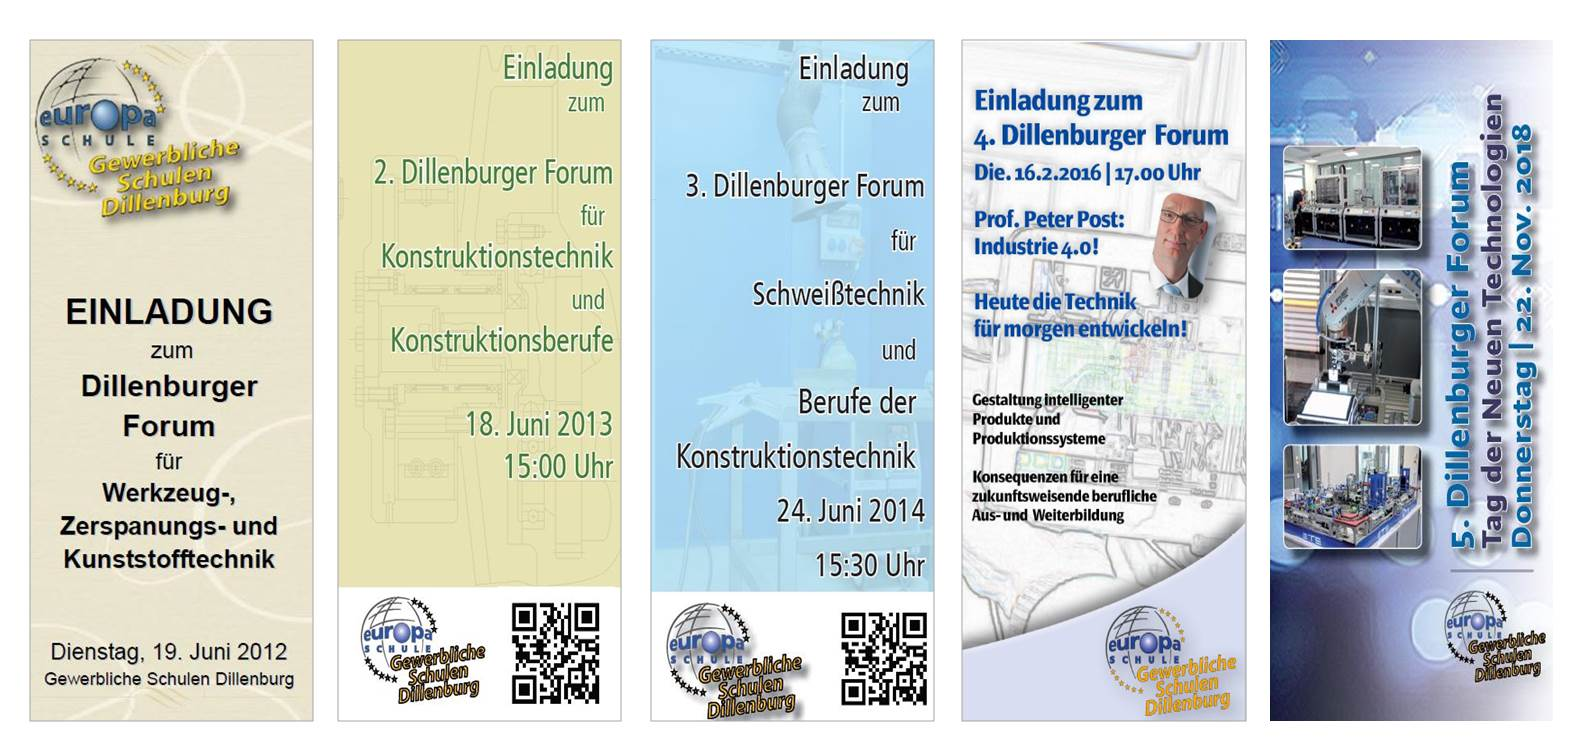 dillenburger forum neu